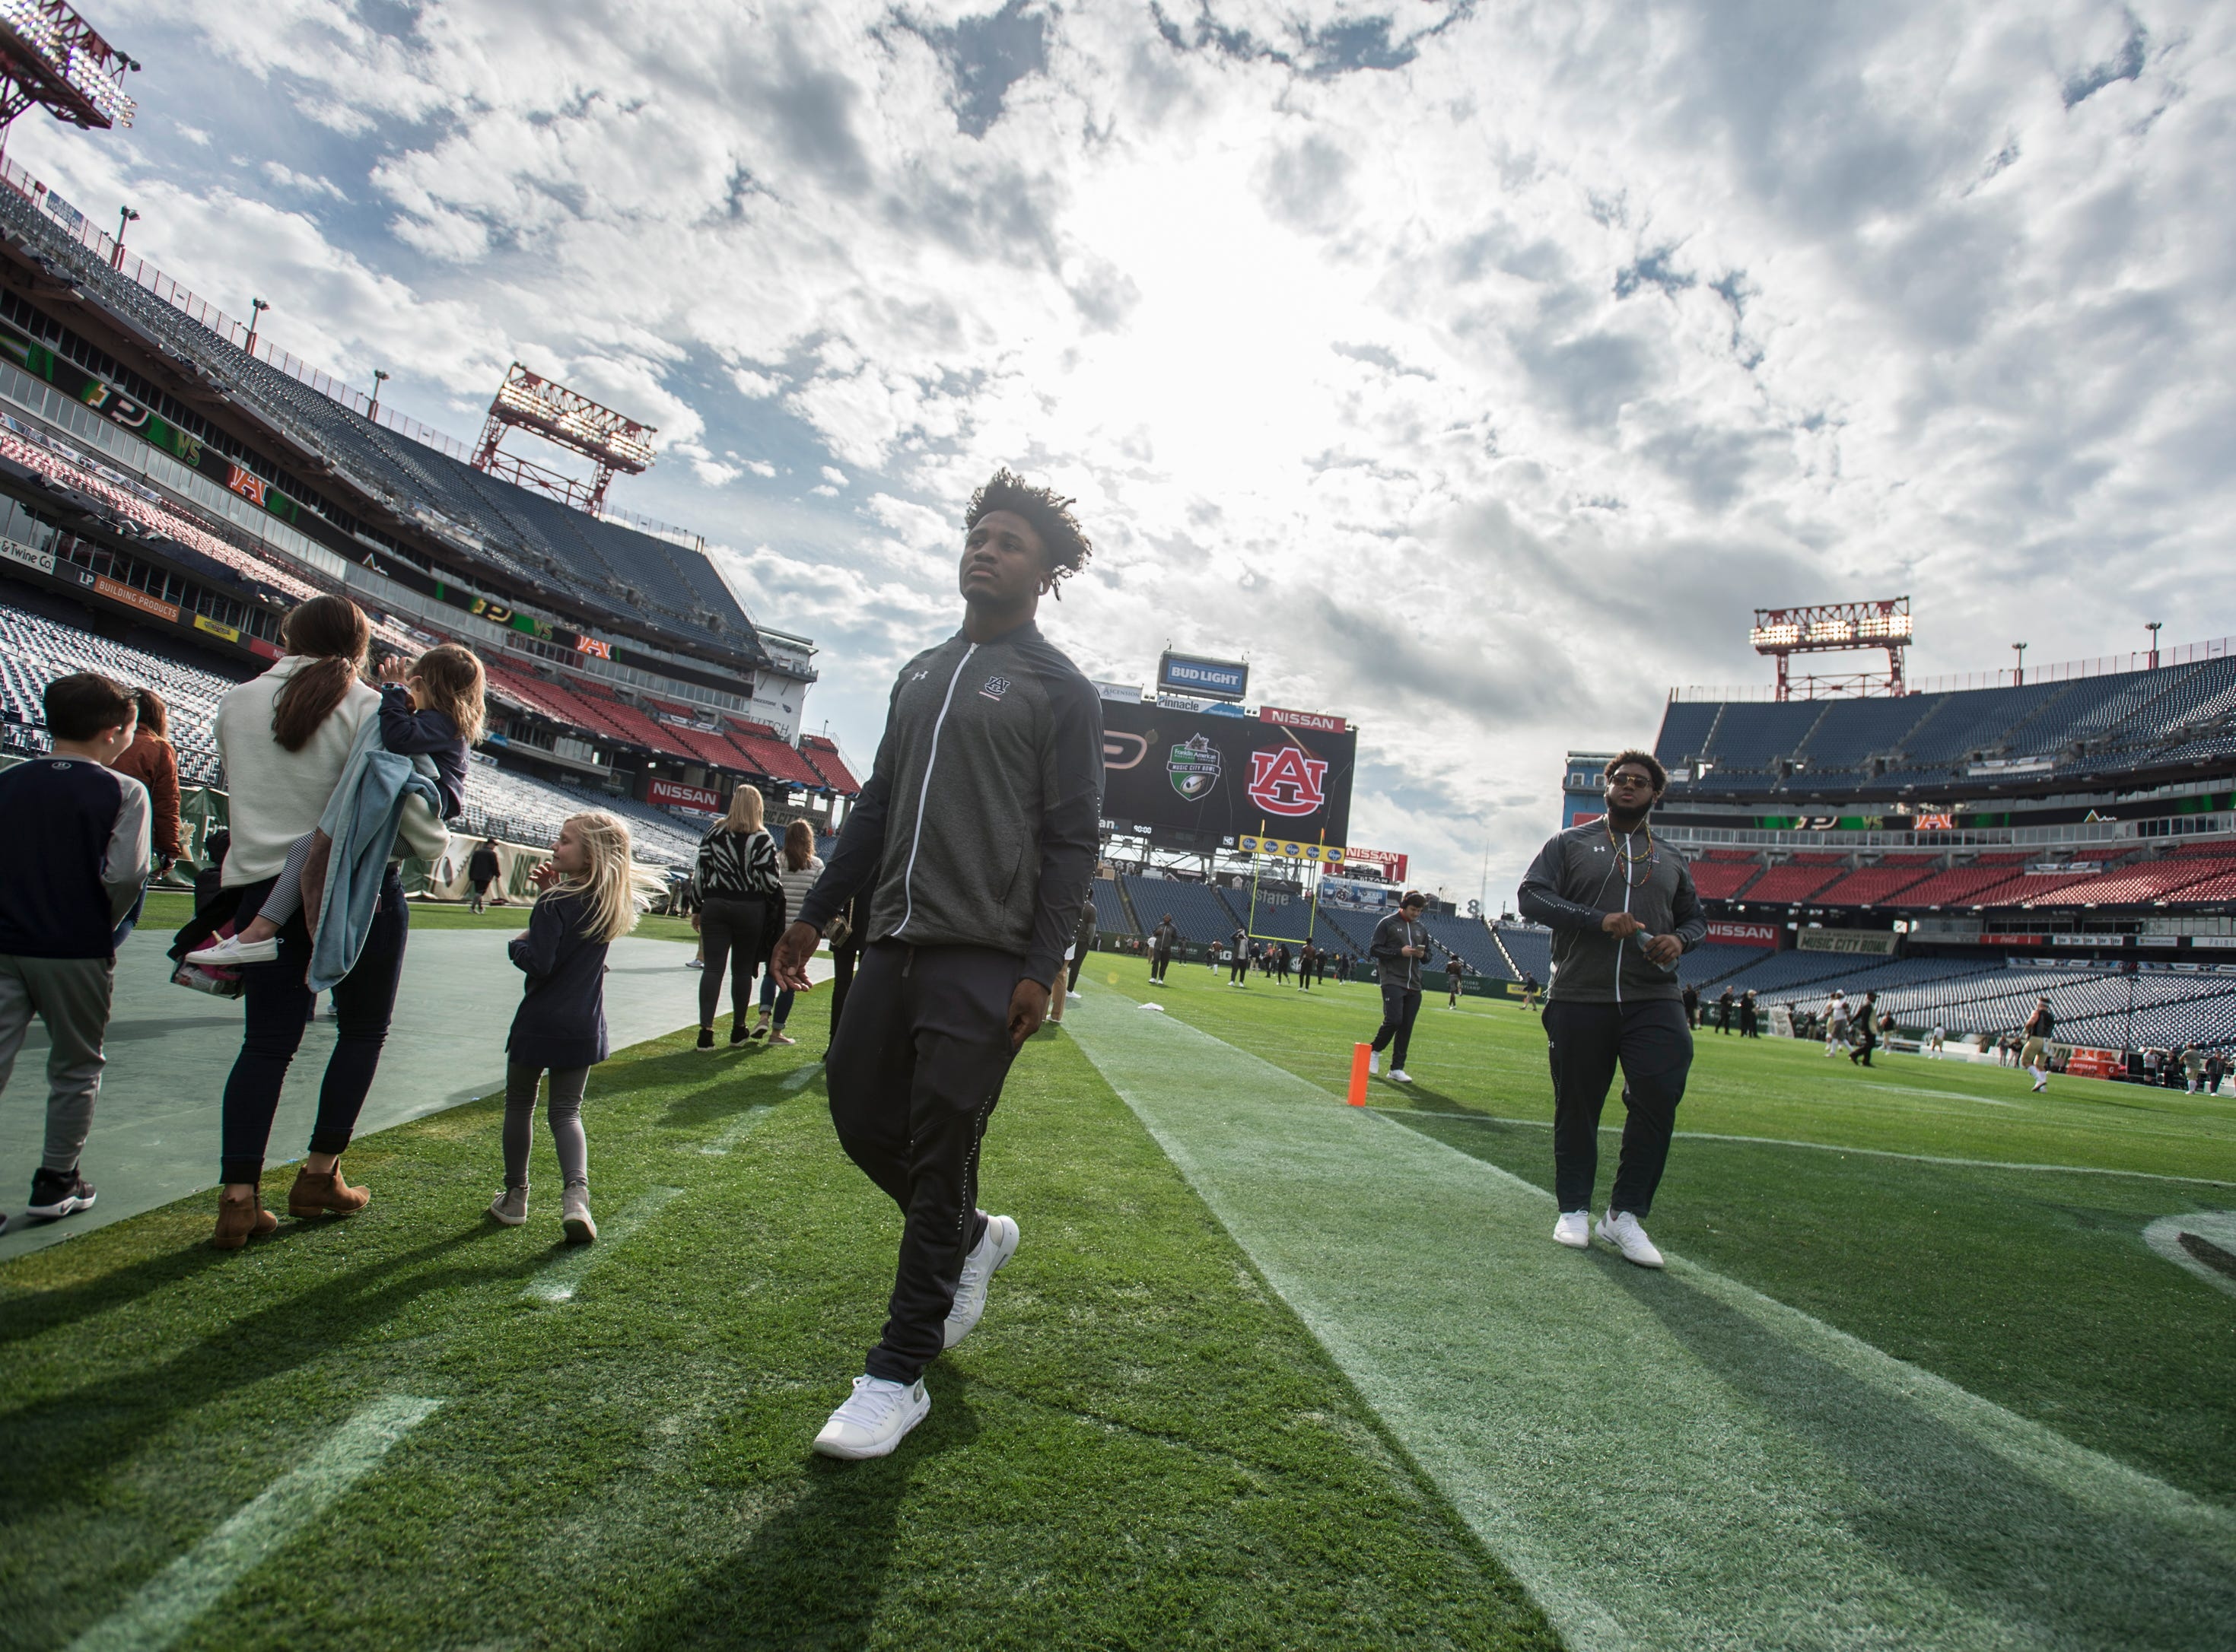 Auburn players walk the field before taking on Purdue in the Music City Bowl at Nissan Stadium in Nashville, Tenn., on Friday, Dec. 28, 2018.